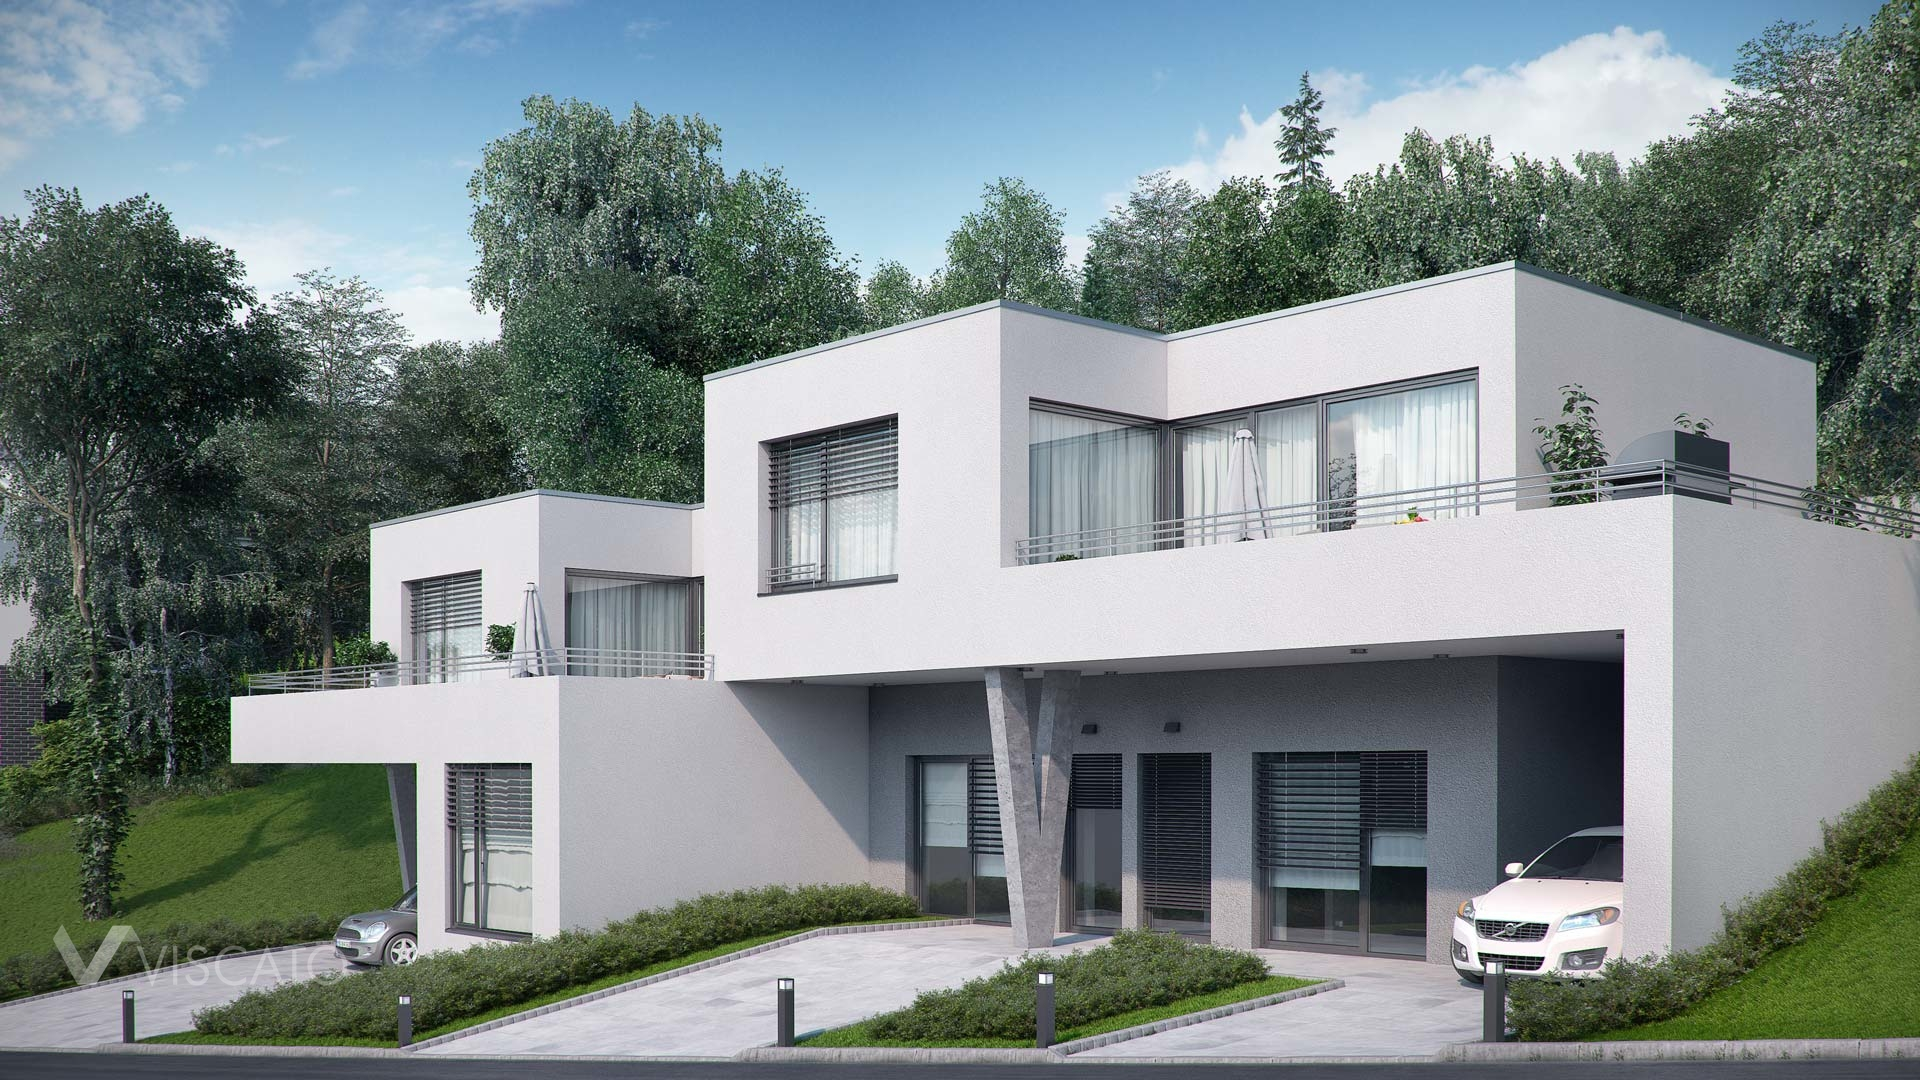 Duplex house 3d exterior visualization in walding austria for Ome images